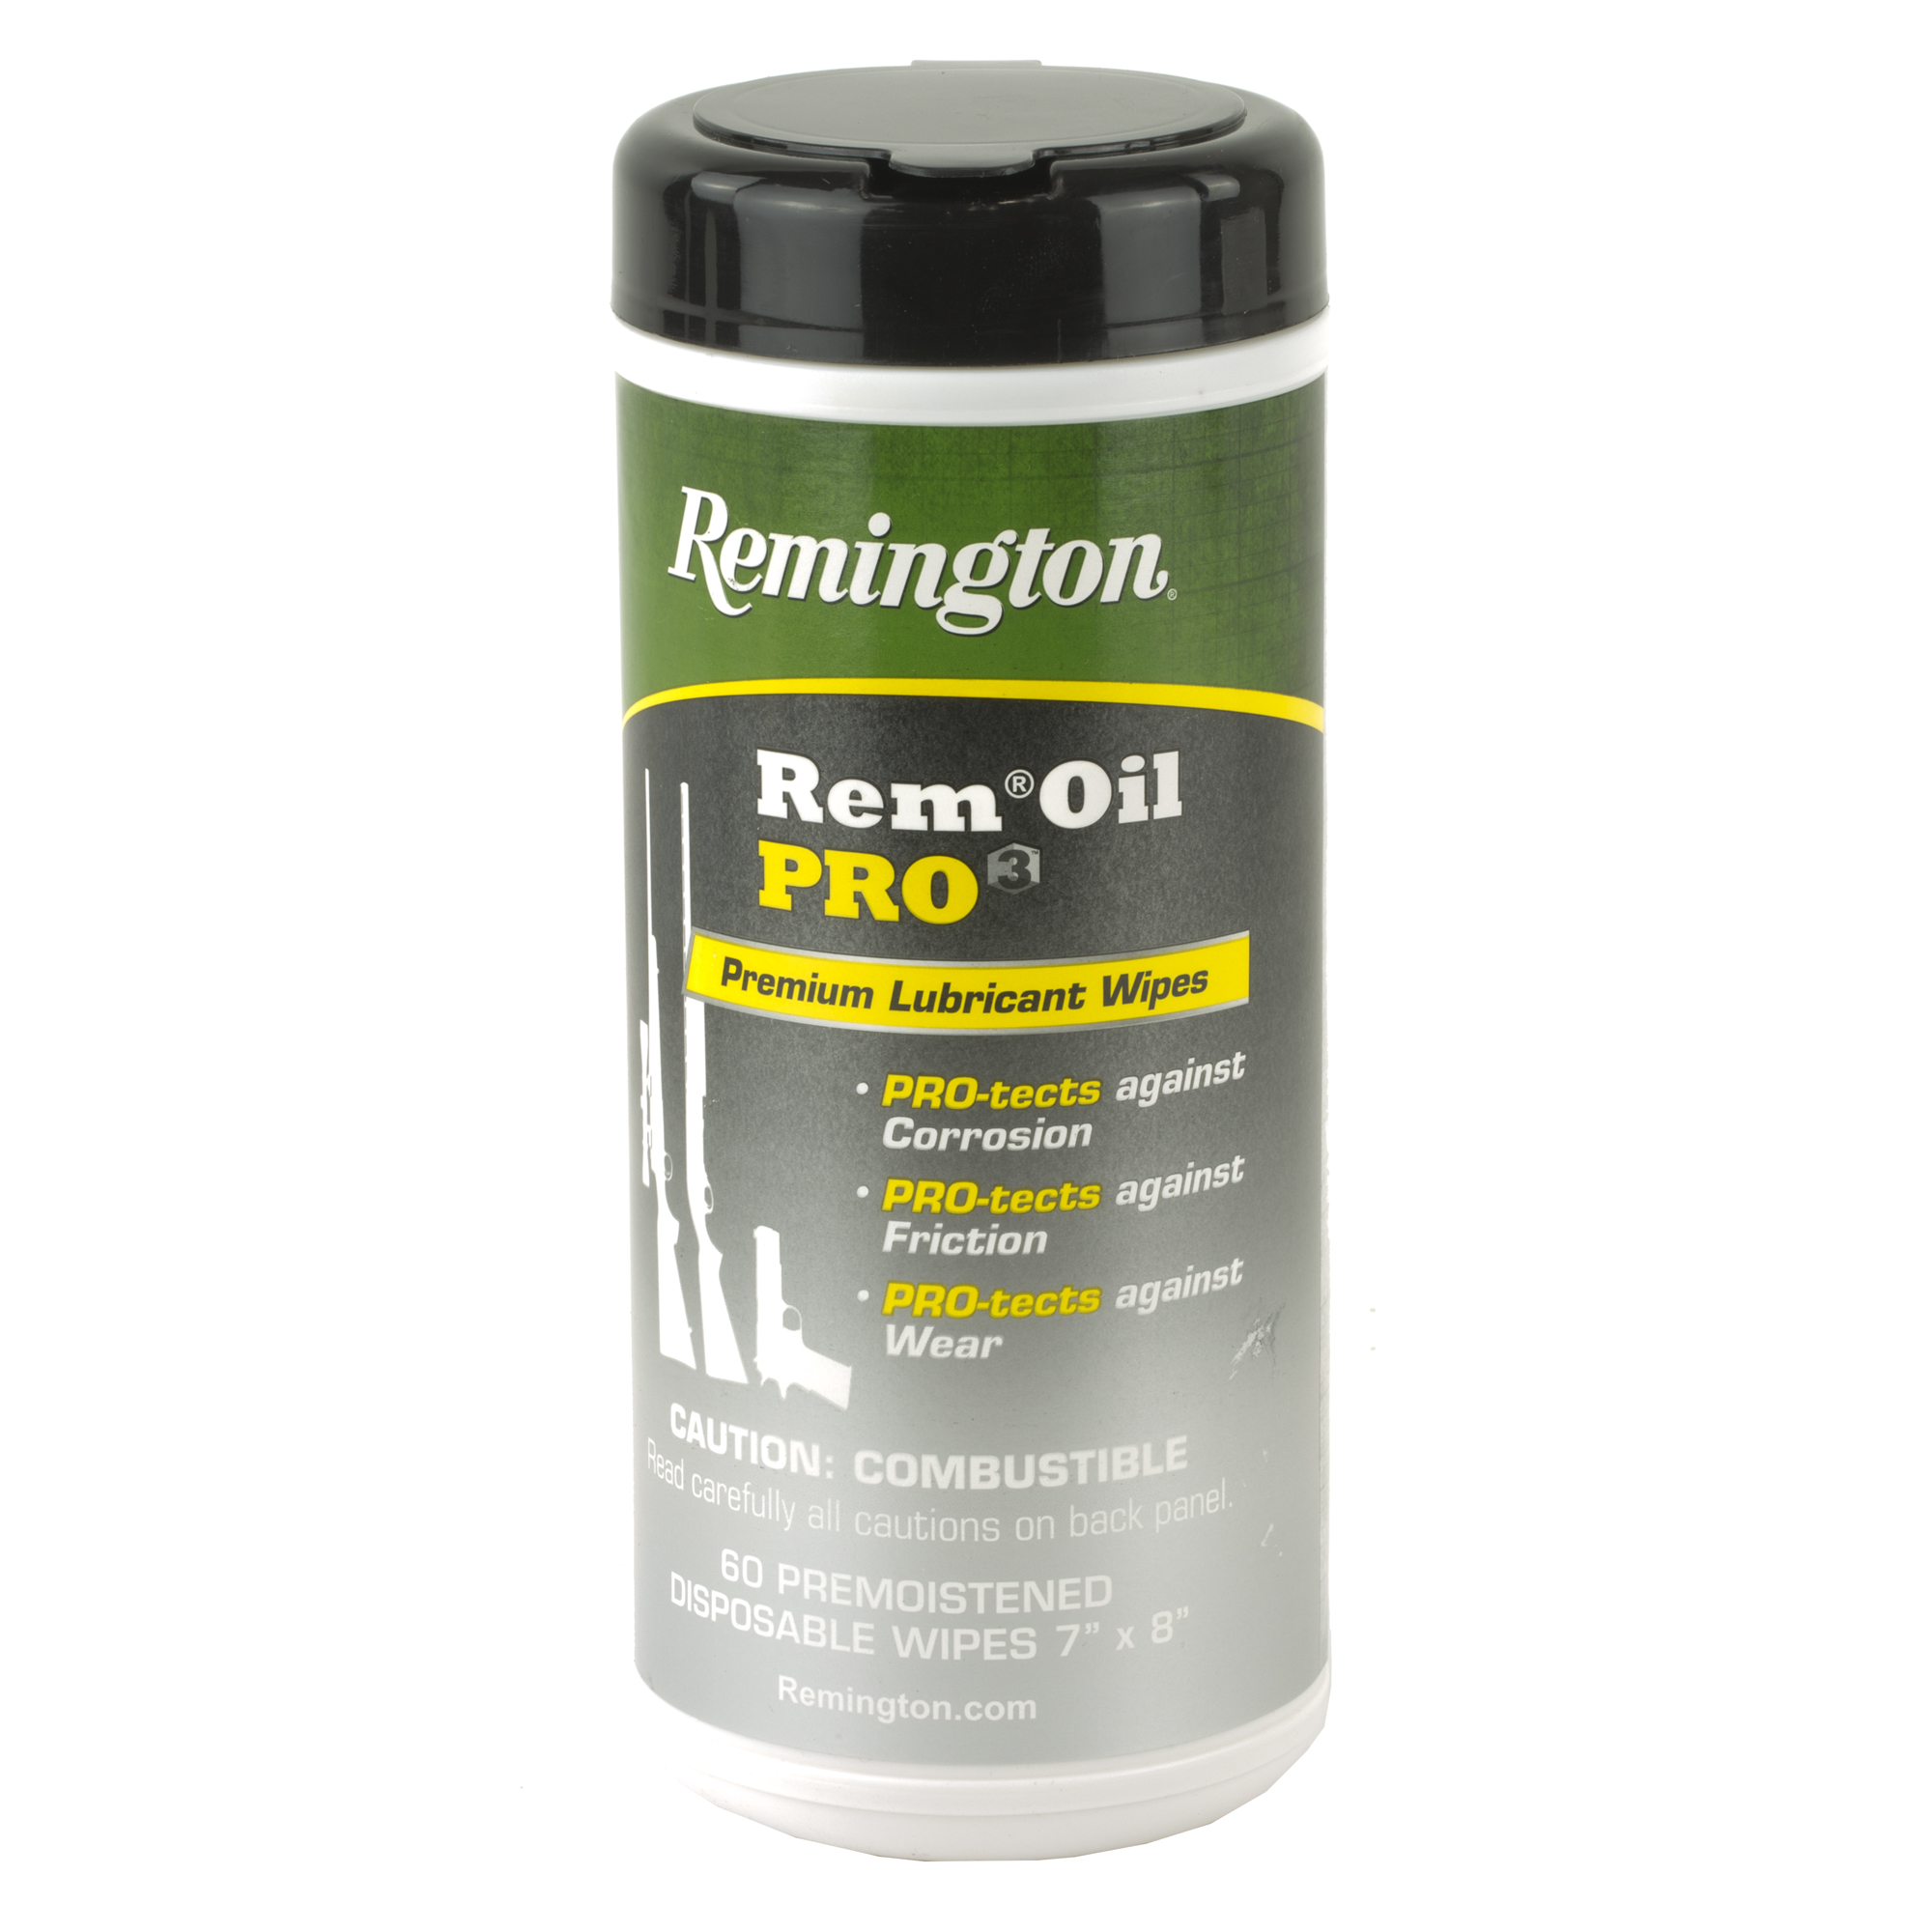 """For more than 200 years"""" Remington products have set the performance standard all others must follow. Remington innovation is always ahead of its time"""" as evidenced by their rich history and long line of high quality products."""